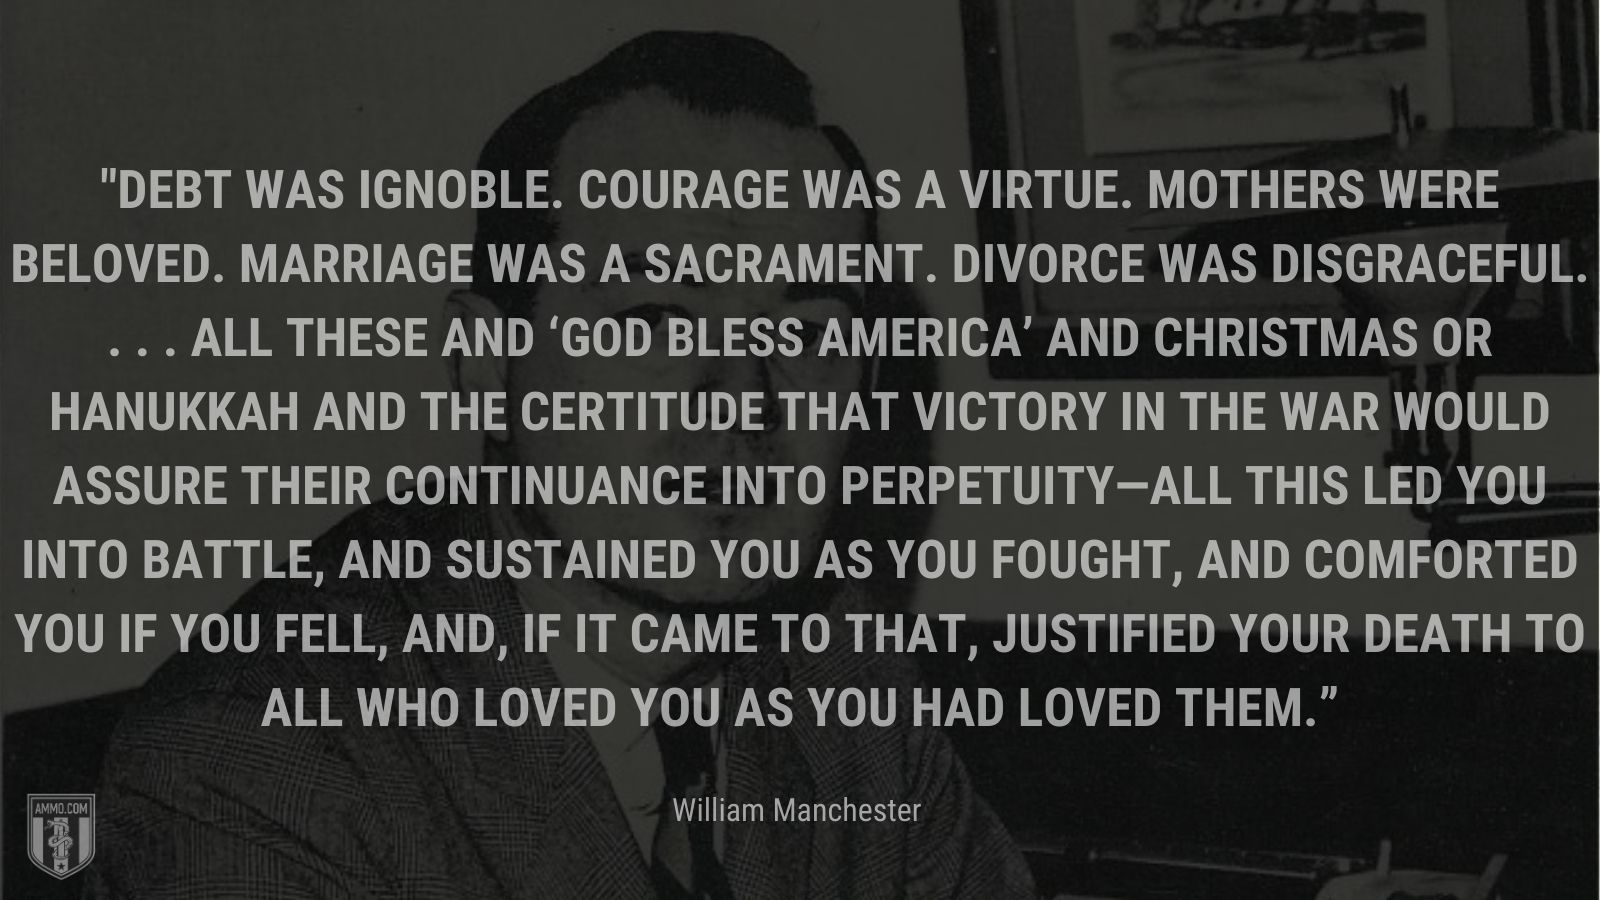 """""""Debt was ignoble. Courage was a virtue. Mothers were beloved. Marriage was a sacrament. Divorce was disgraceful. . . . All these and 'God Bless America' and Christmas or Hanukkah and the certitude that victory in the war would assure their continuance into perpetuity—all this led you into battle, and sustained you as you fought, and comforted you if you fell, and, if it came to that, justified your death to all who loved you as you had loved them."""" - William Manchester"""